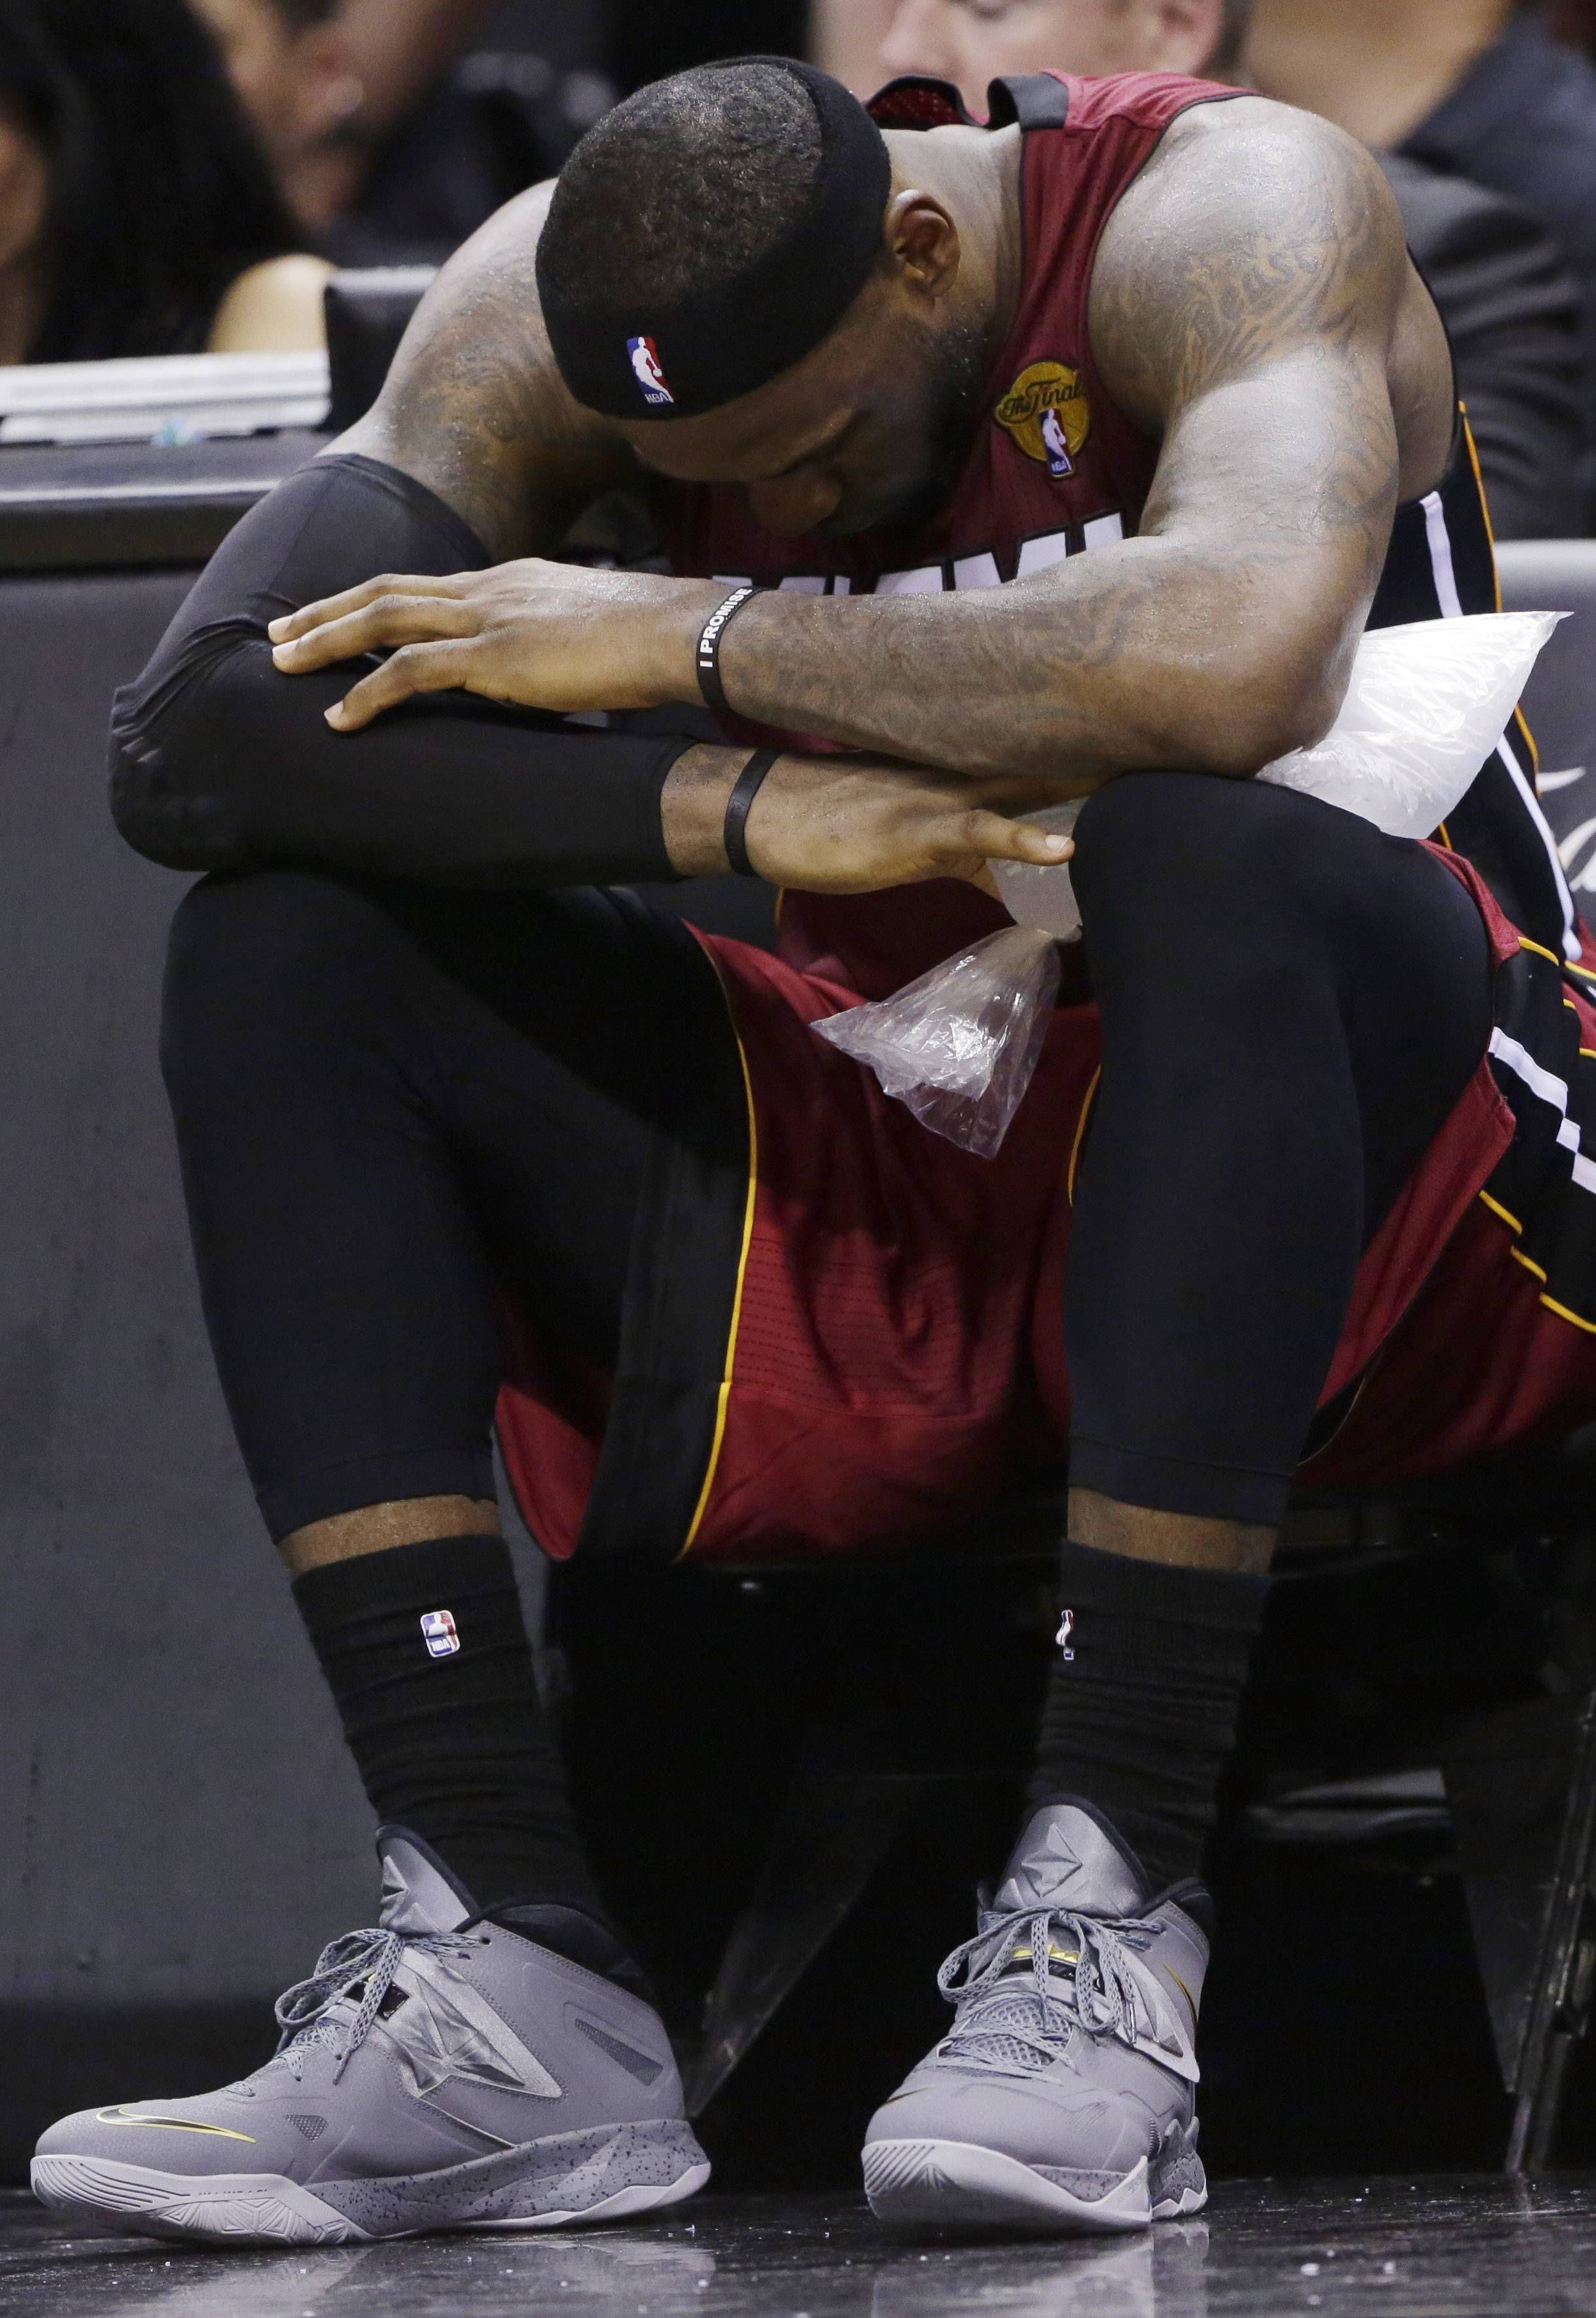 LeBron James sits with ice on his leg after injuring himself against the San Antonio Spurs during the second half in Game 1 of the NBA basketball finals on Thursday.